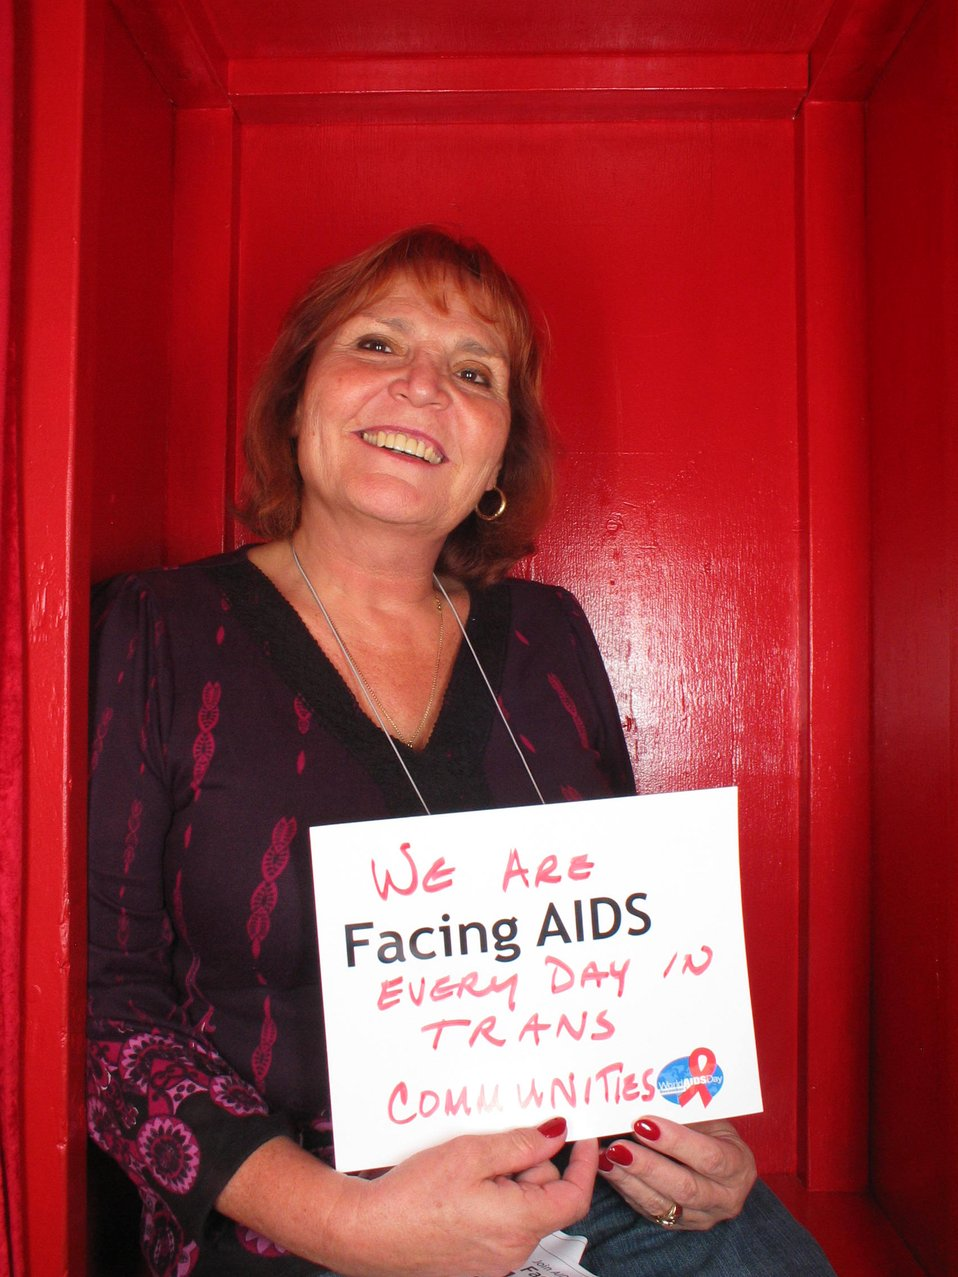 We are Facing AIDS everyday in trans communities